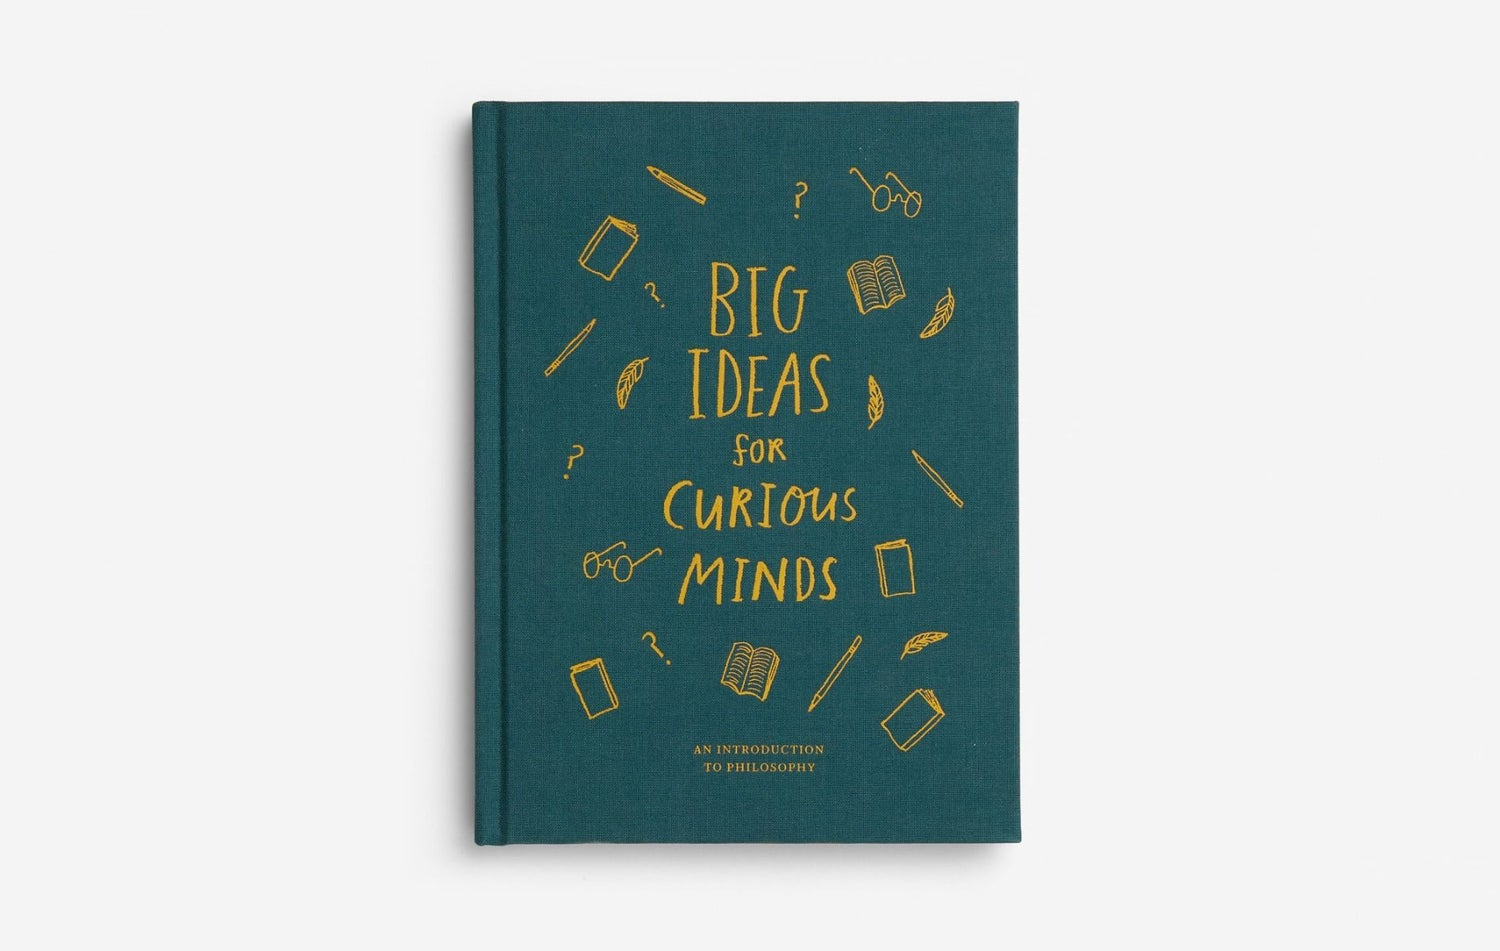 Image of Big Ideas for Curious Minds